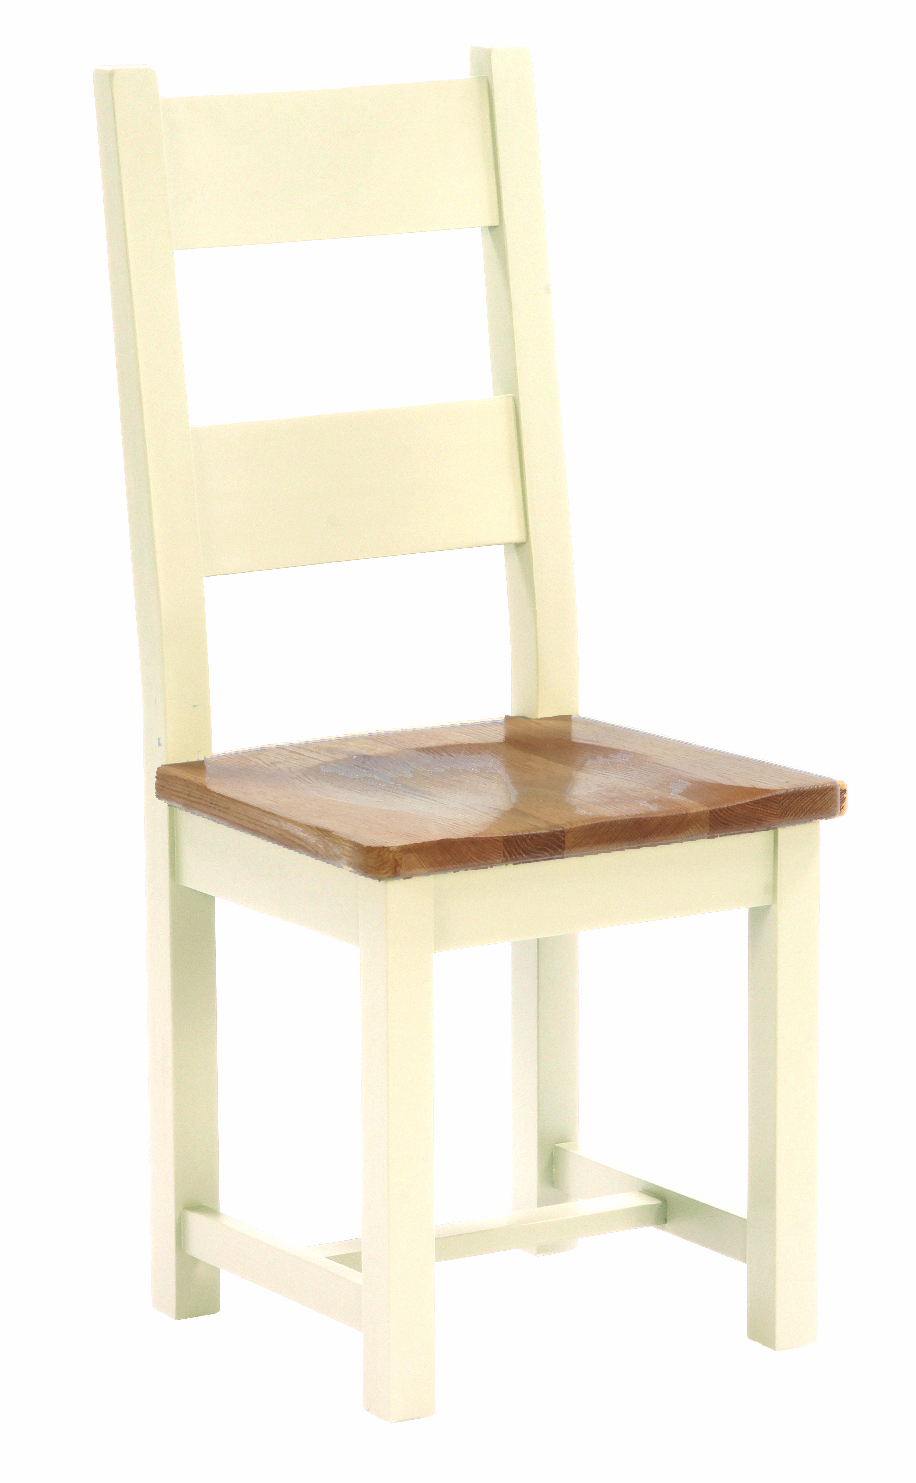 Dining Chair Colour-Ivory w 47 x d 50 x h 108 cm € 160 Product Code: CANB004